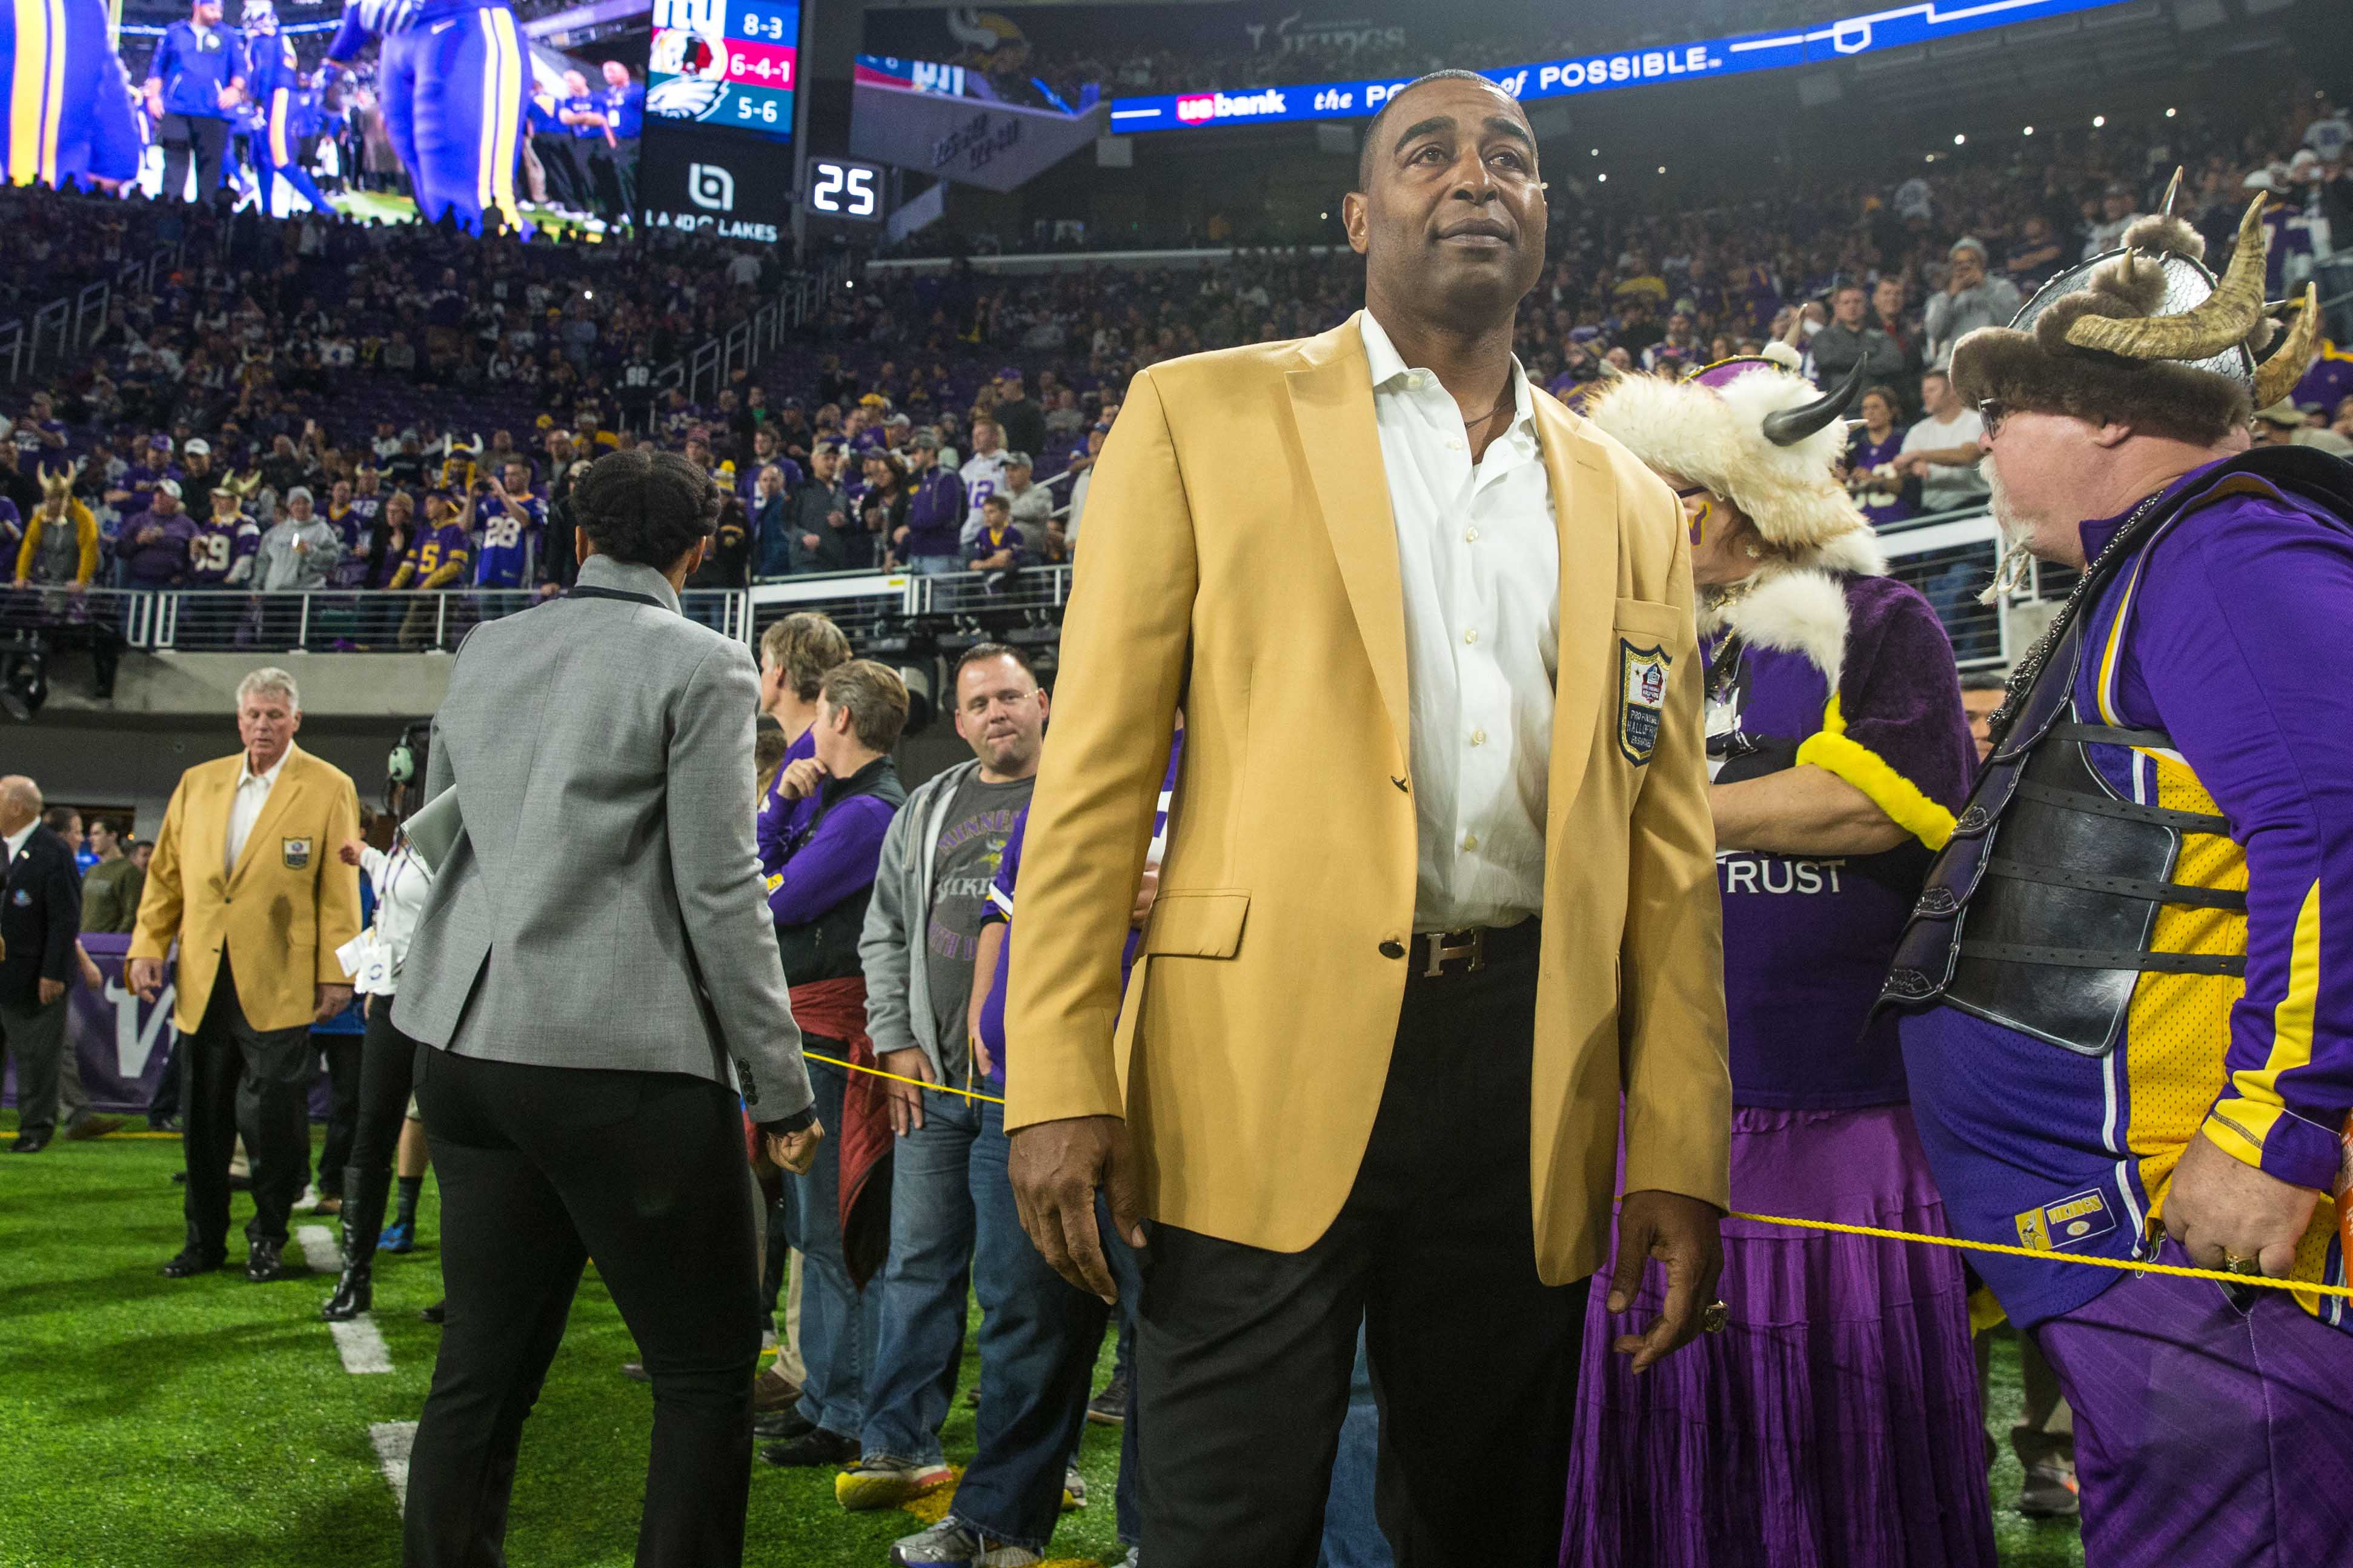 Cris Carter remembers going hungry, so he's leading NFL Hall of Famers in feeding those affected by coronavirus